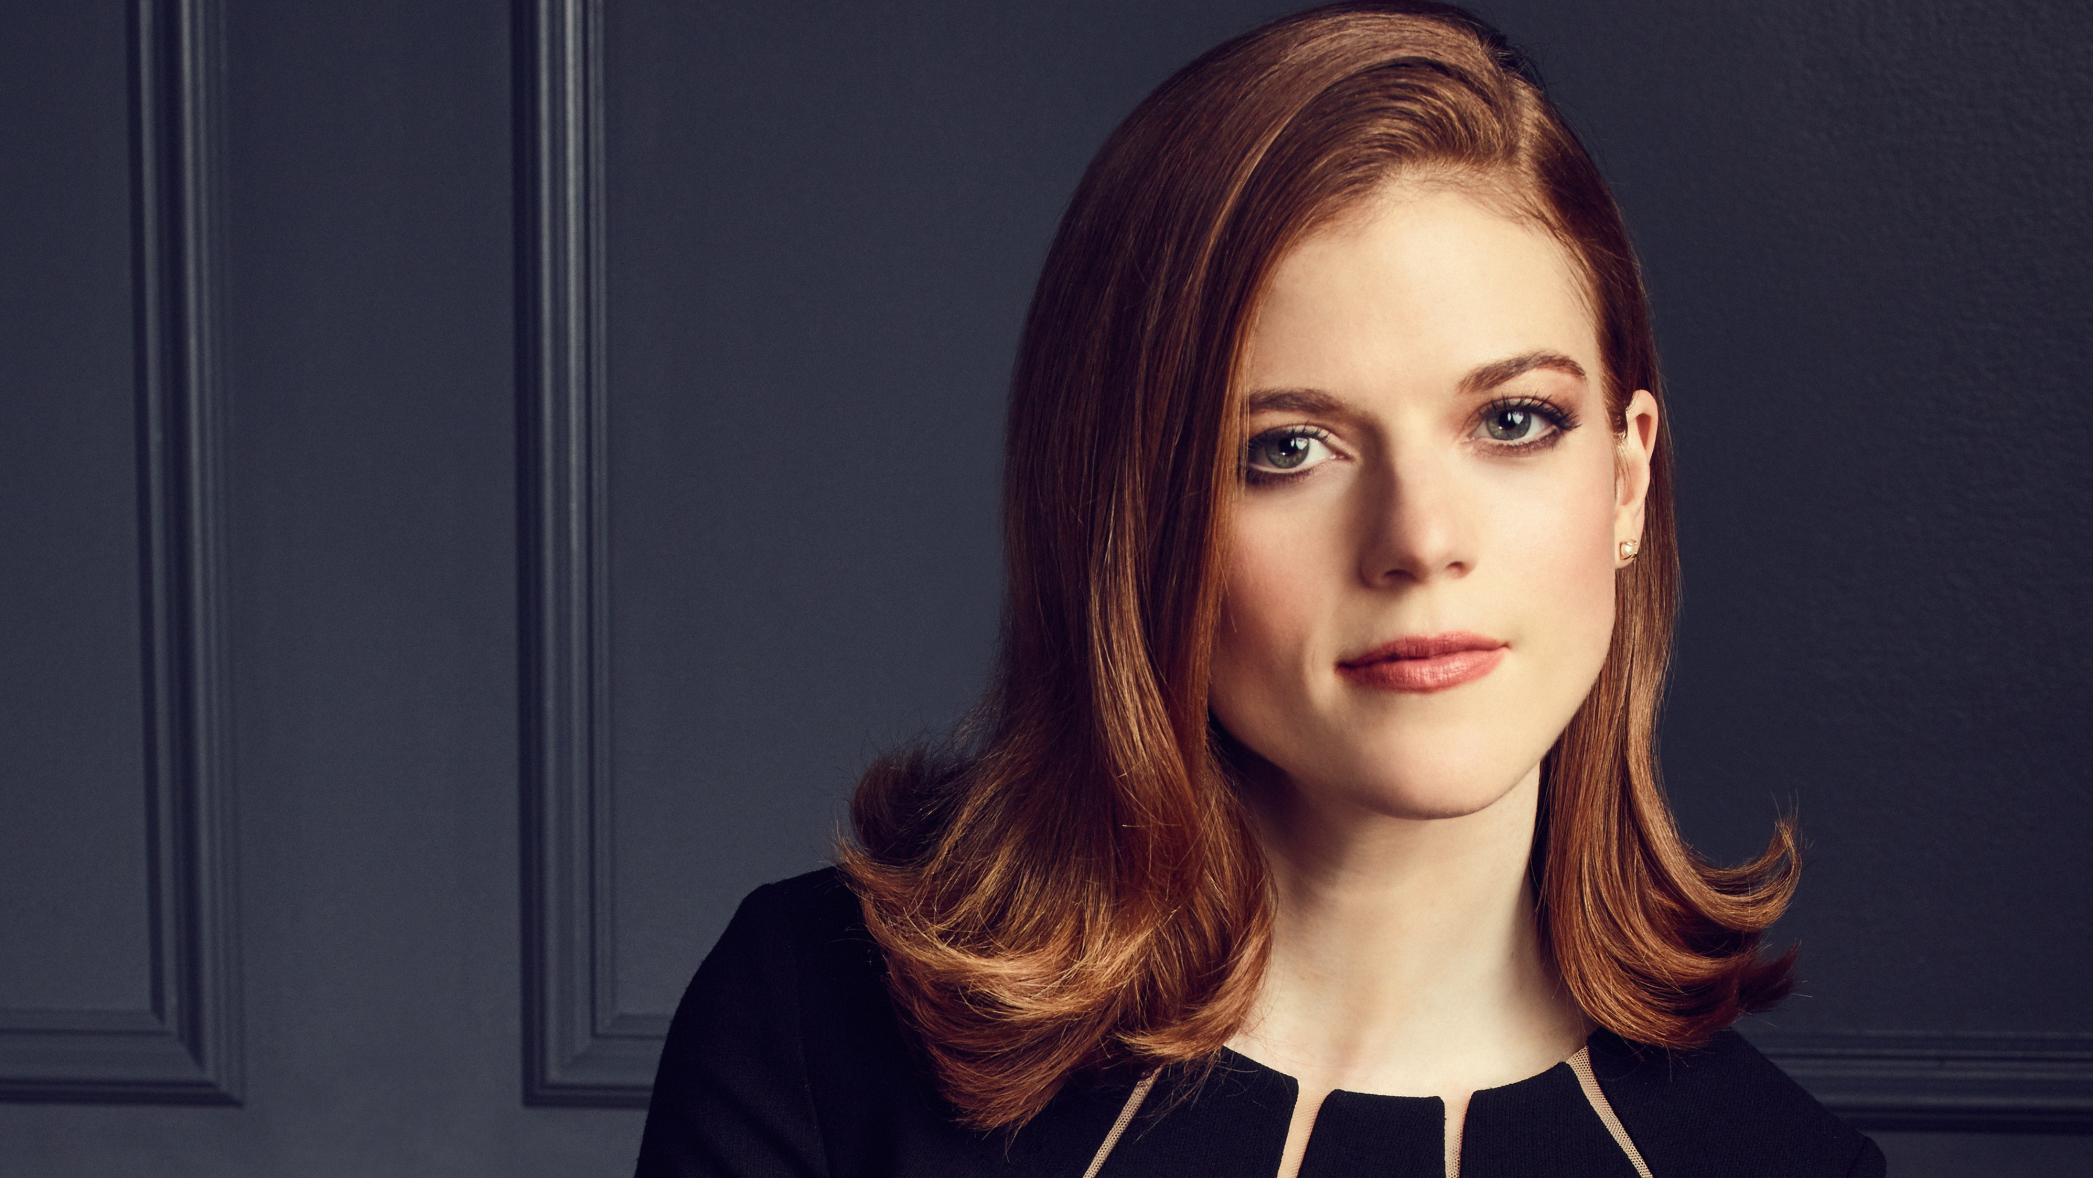 Rose Leslie as Maia Rindell